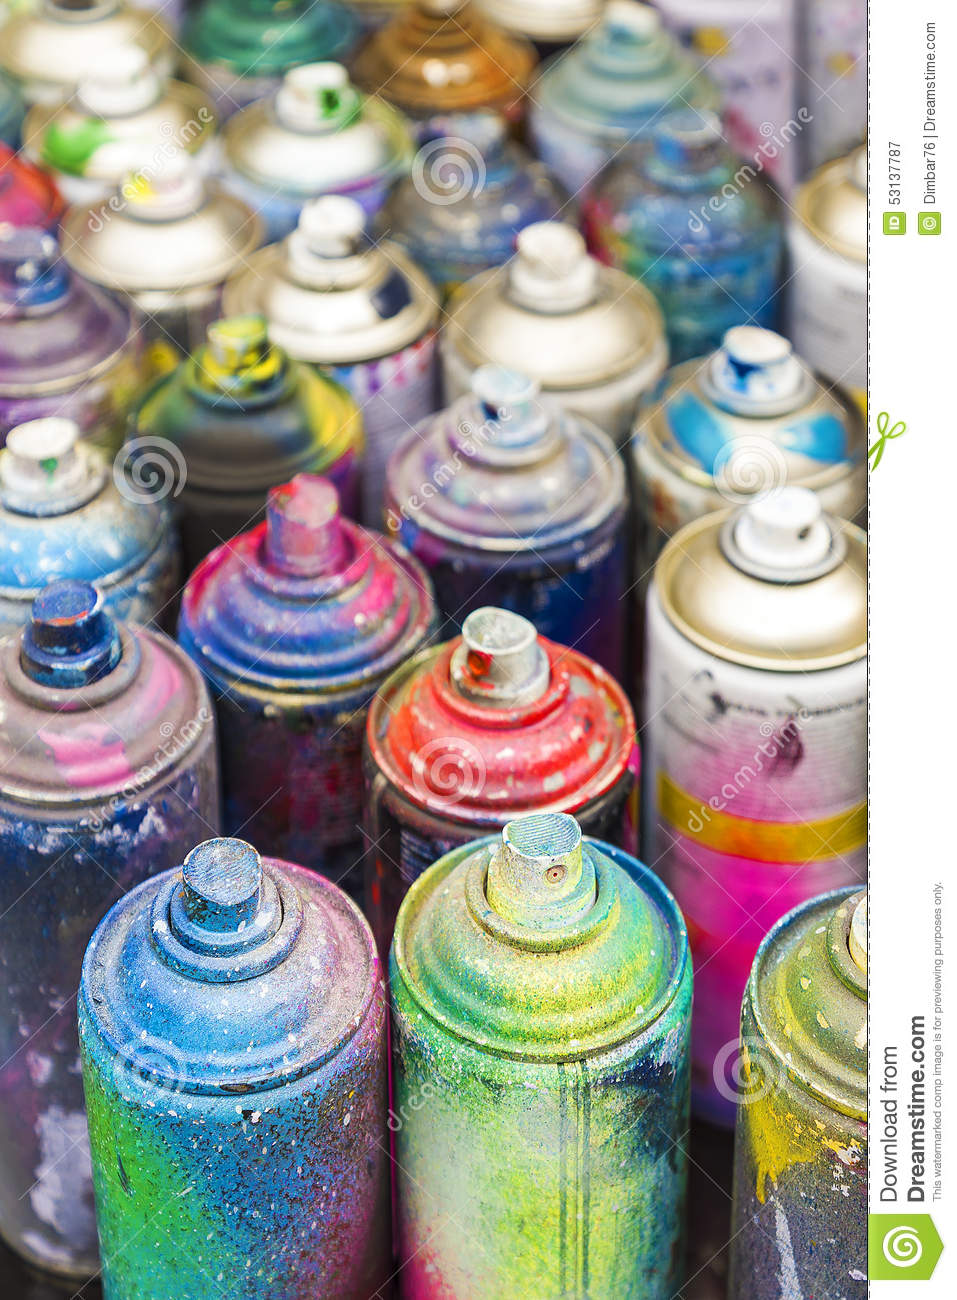 Used cans of spray paint stock image  Image of image - 53137787